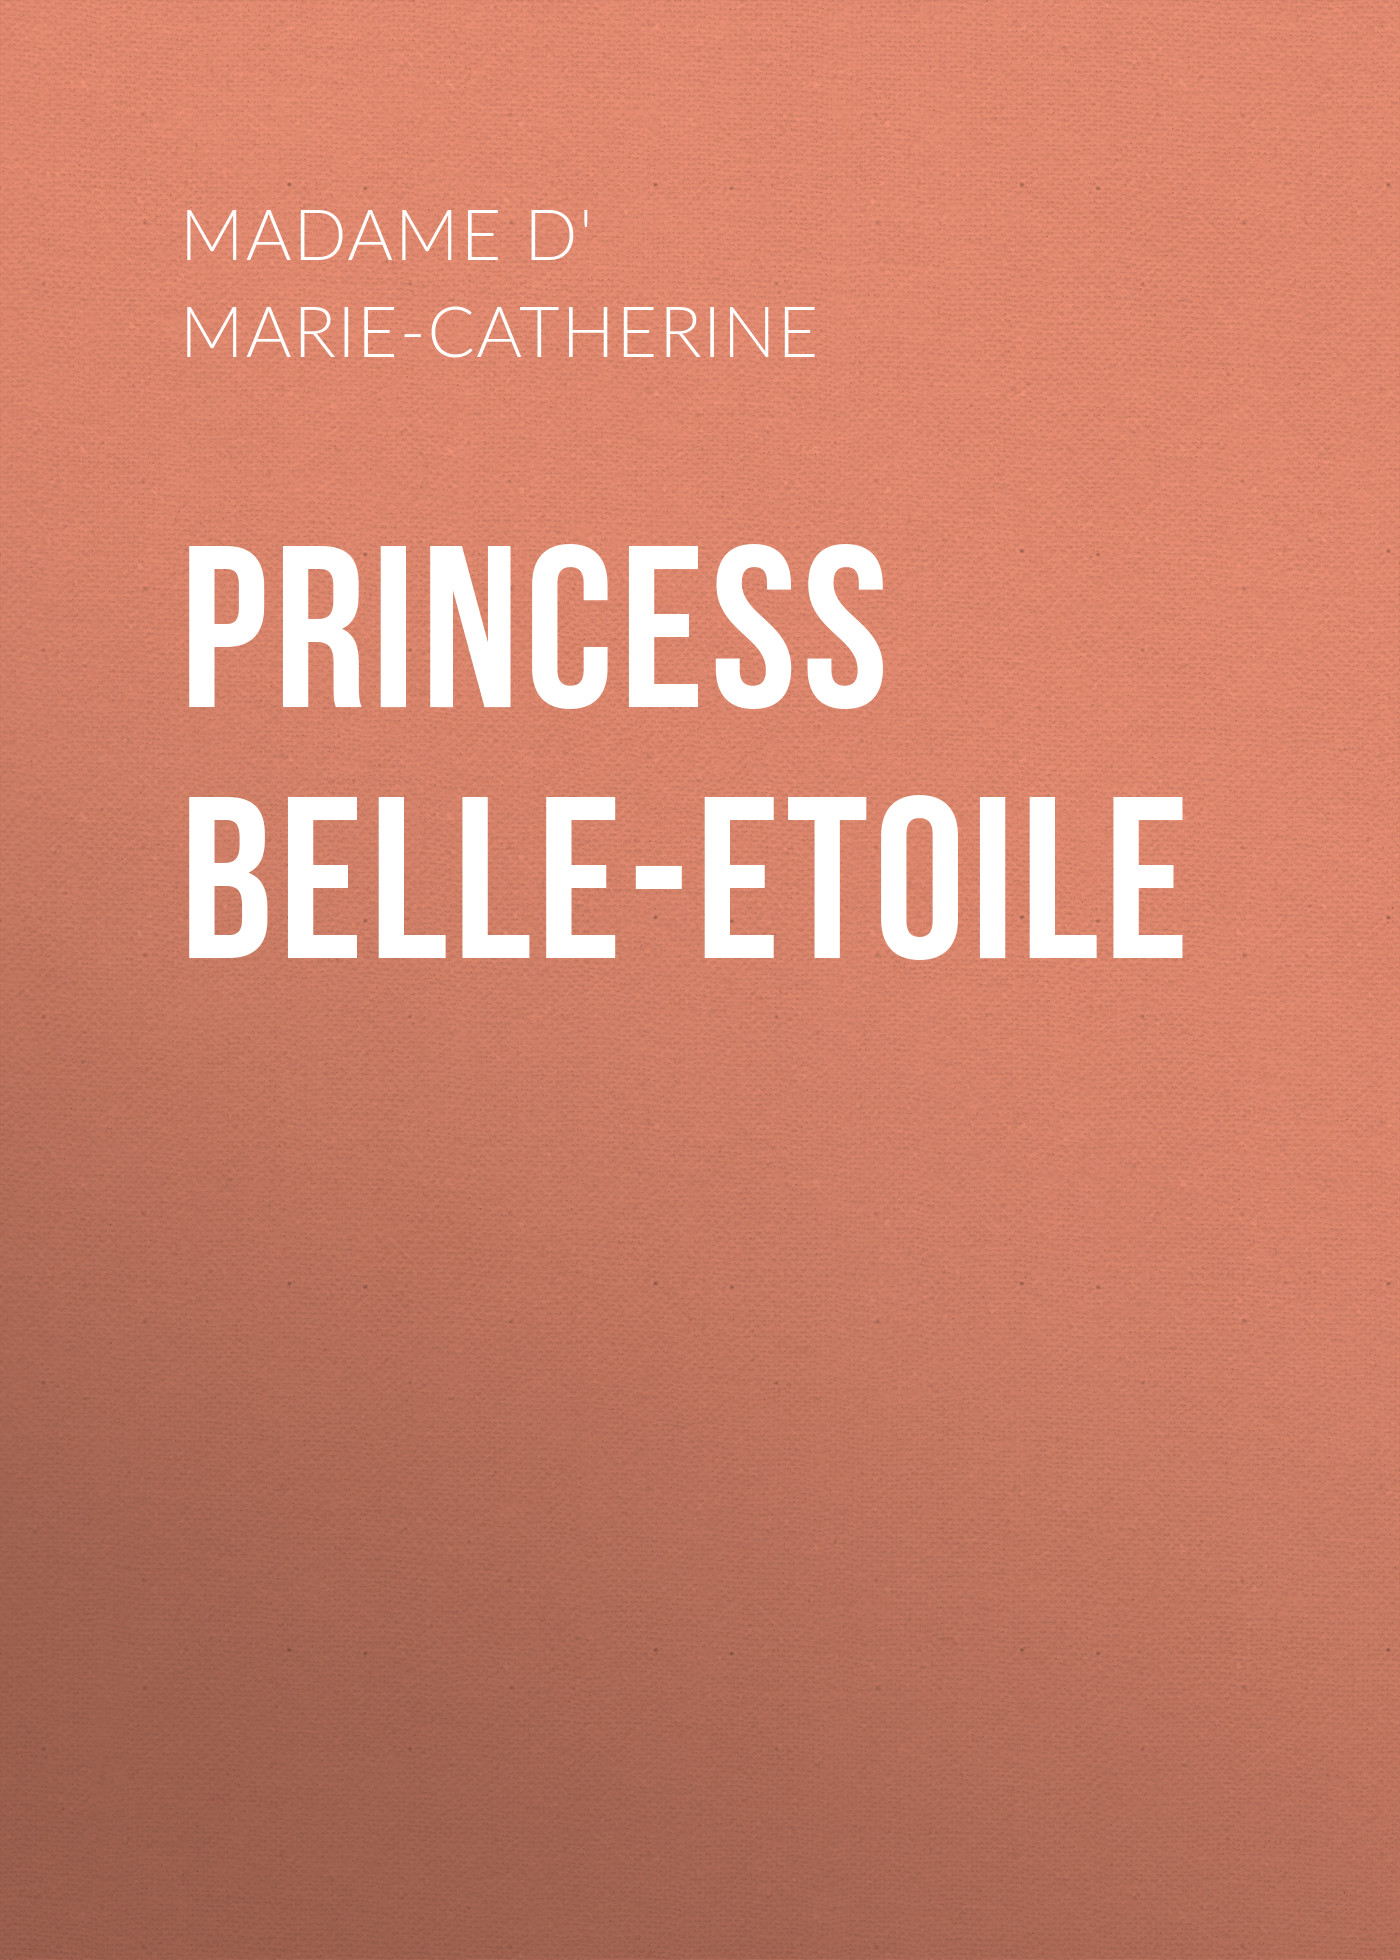 Madame d' Aulnoy Marie-Catherine Princess Belle-Etoile 5piece 100% new irf3205 irf3205pbf 3205pbf mosfet mosft to 220 chipset